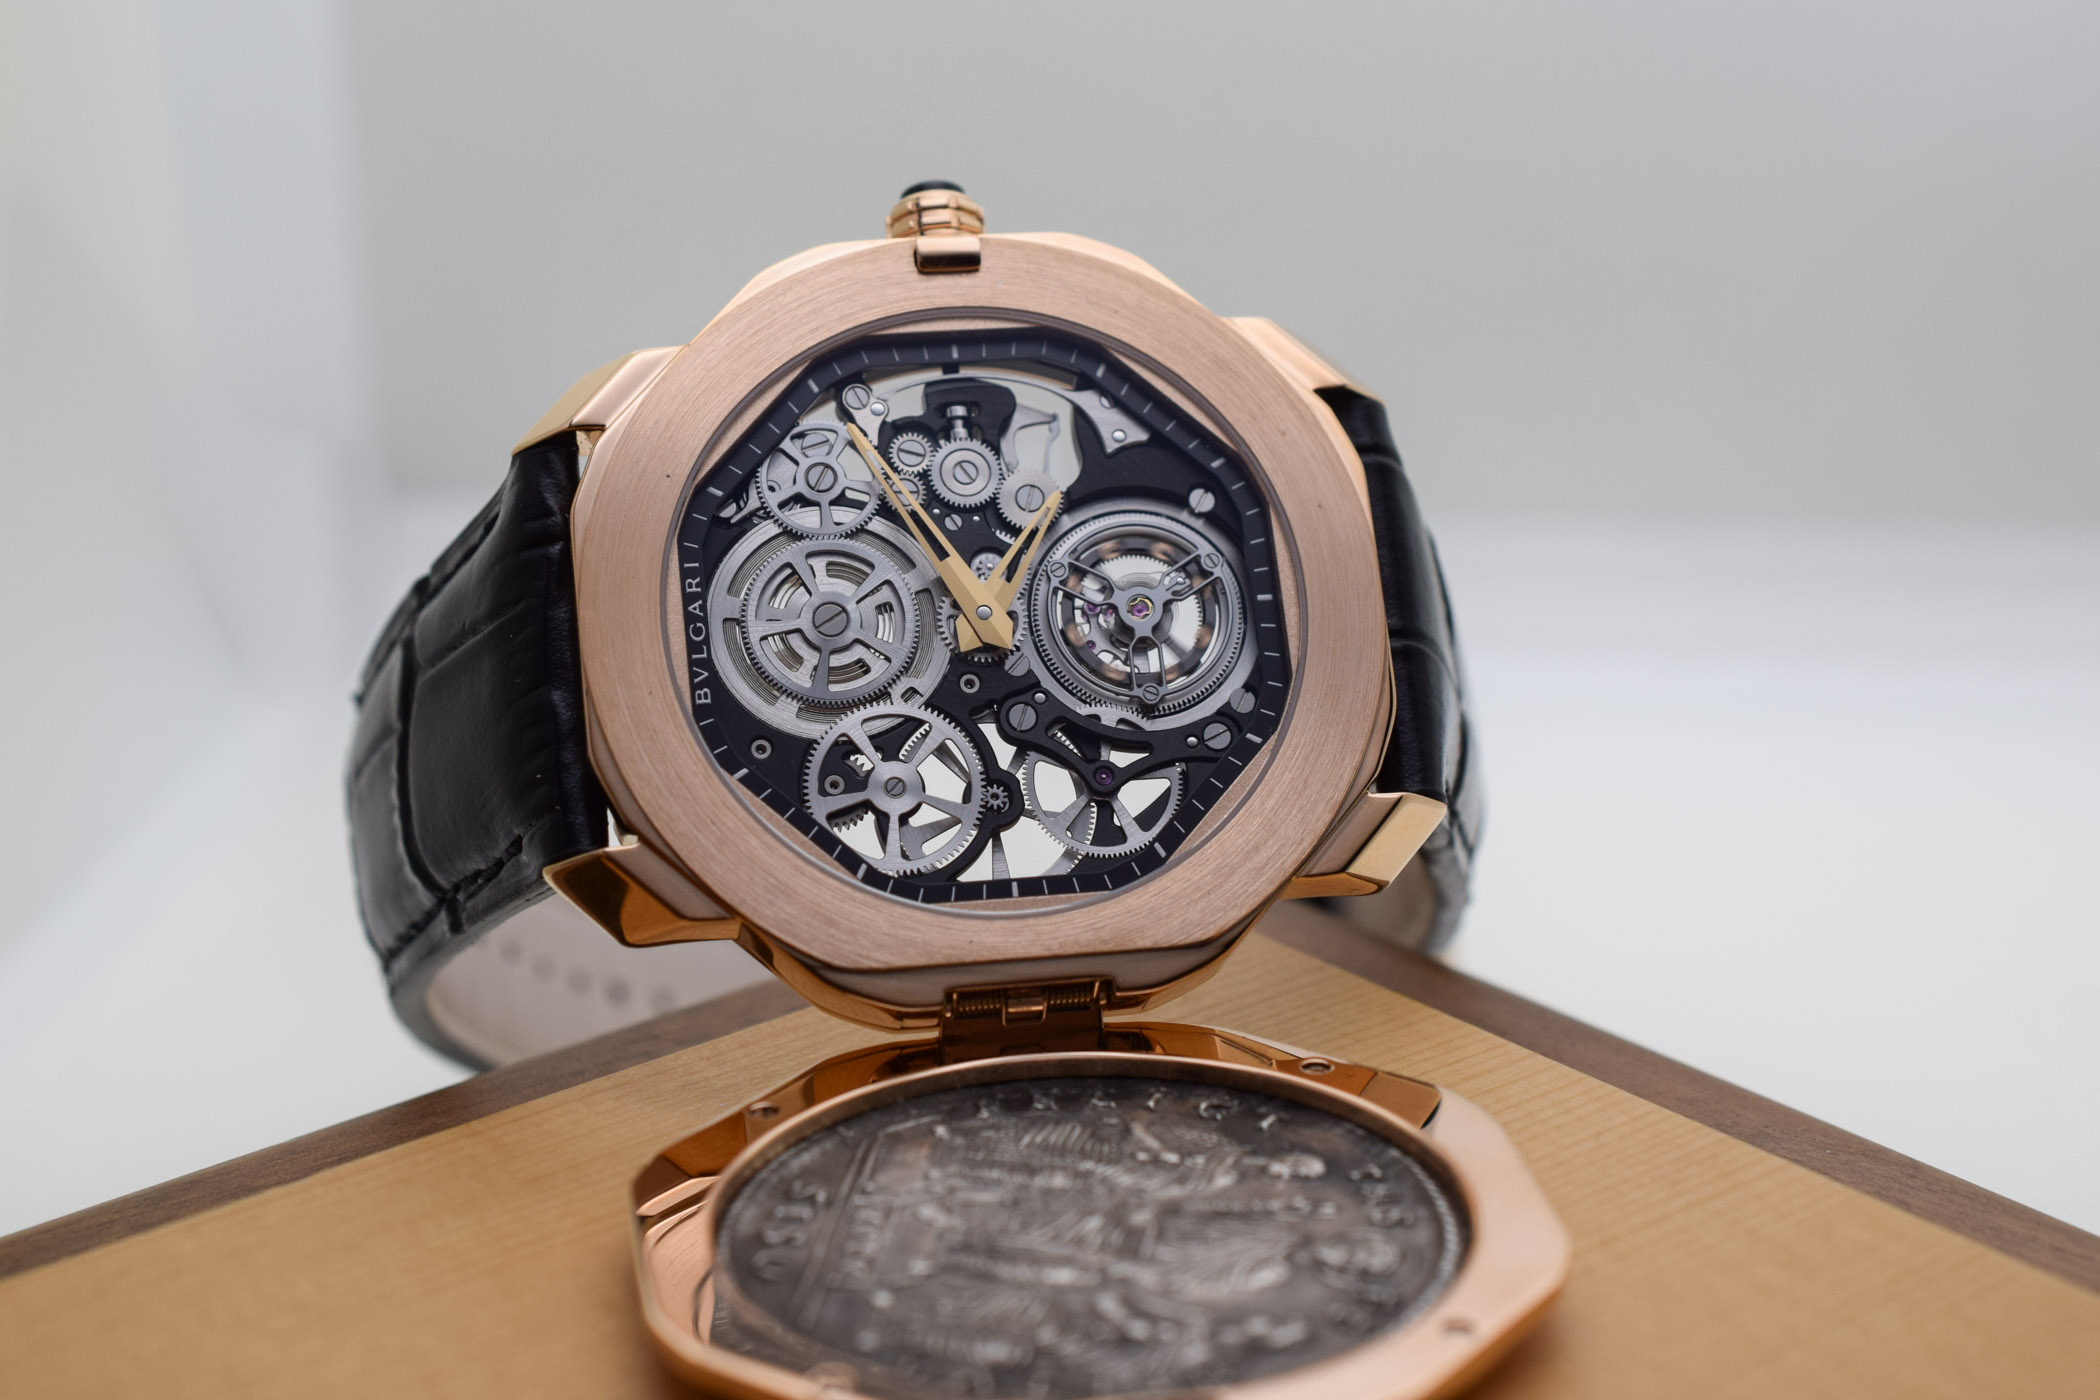 Bvlgari Octo Roma Monete Ultra-thin Skeleton Tourbillon